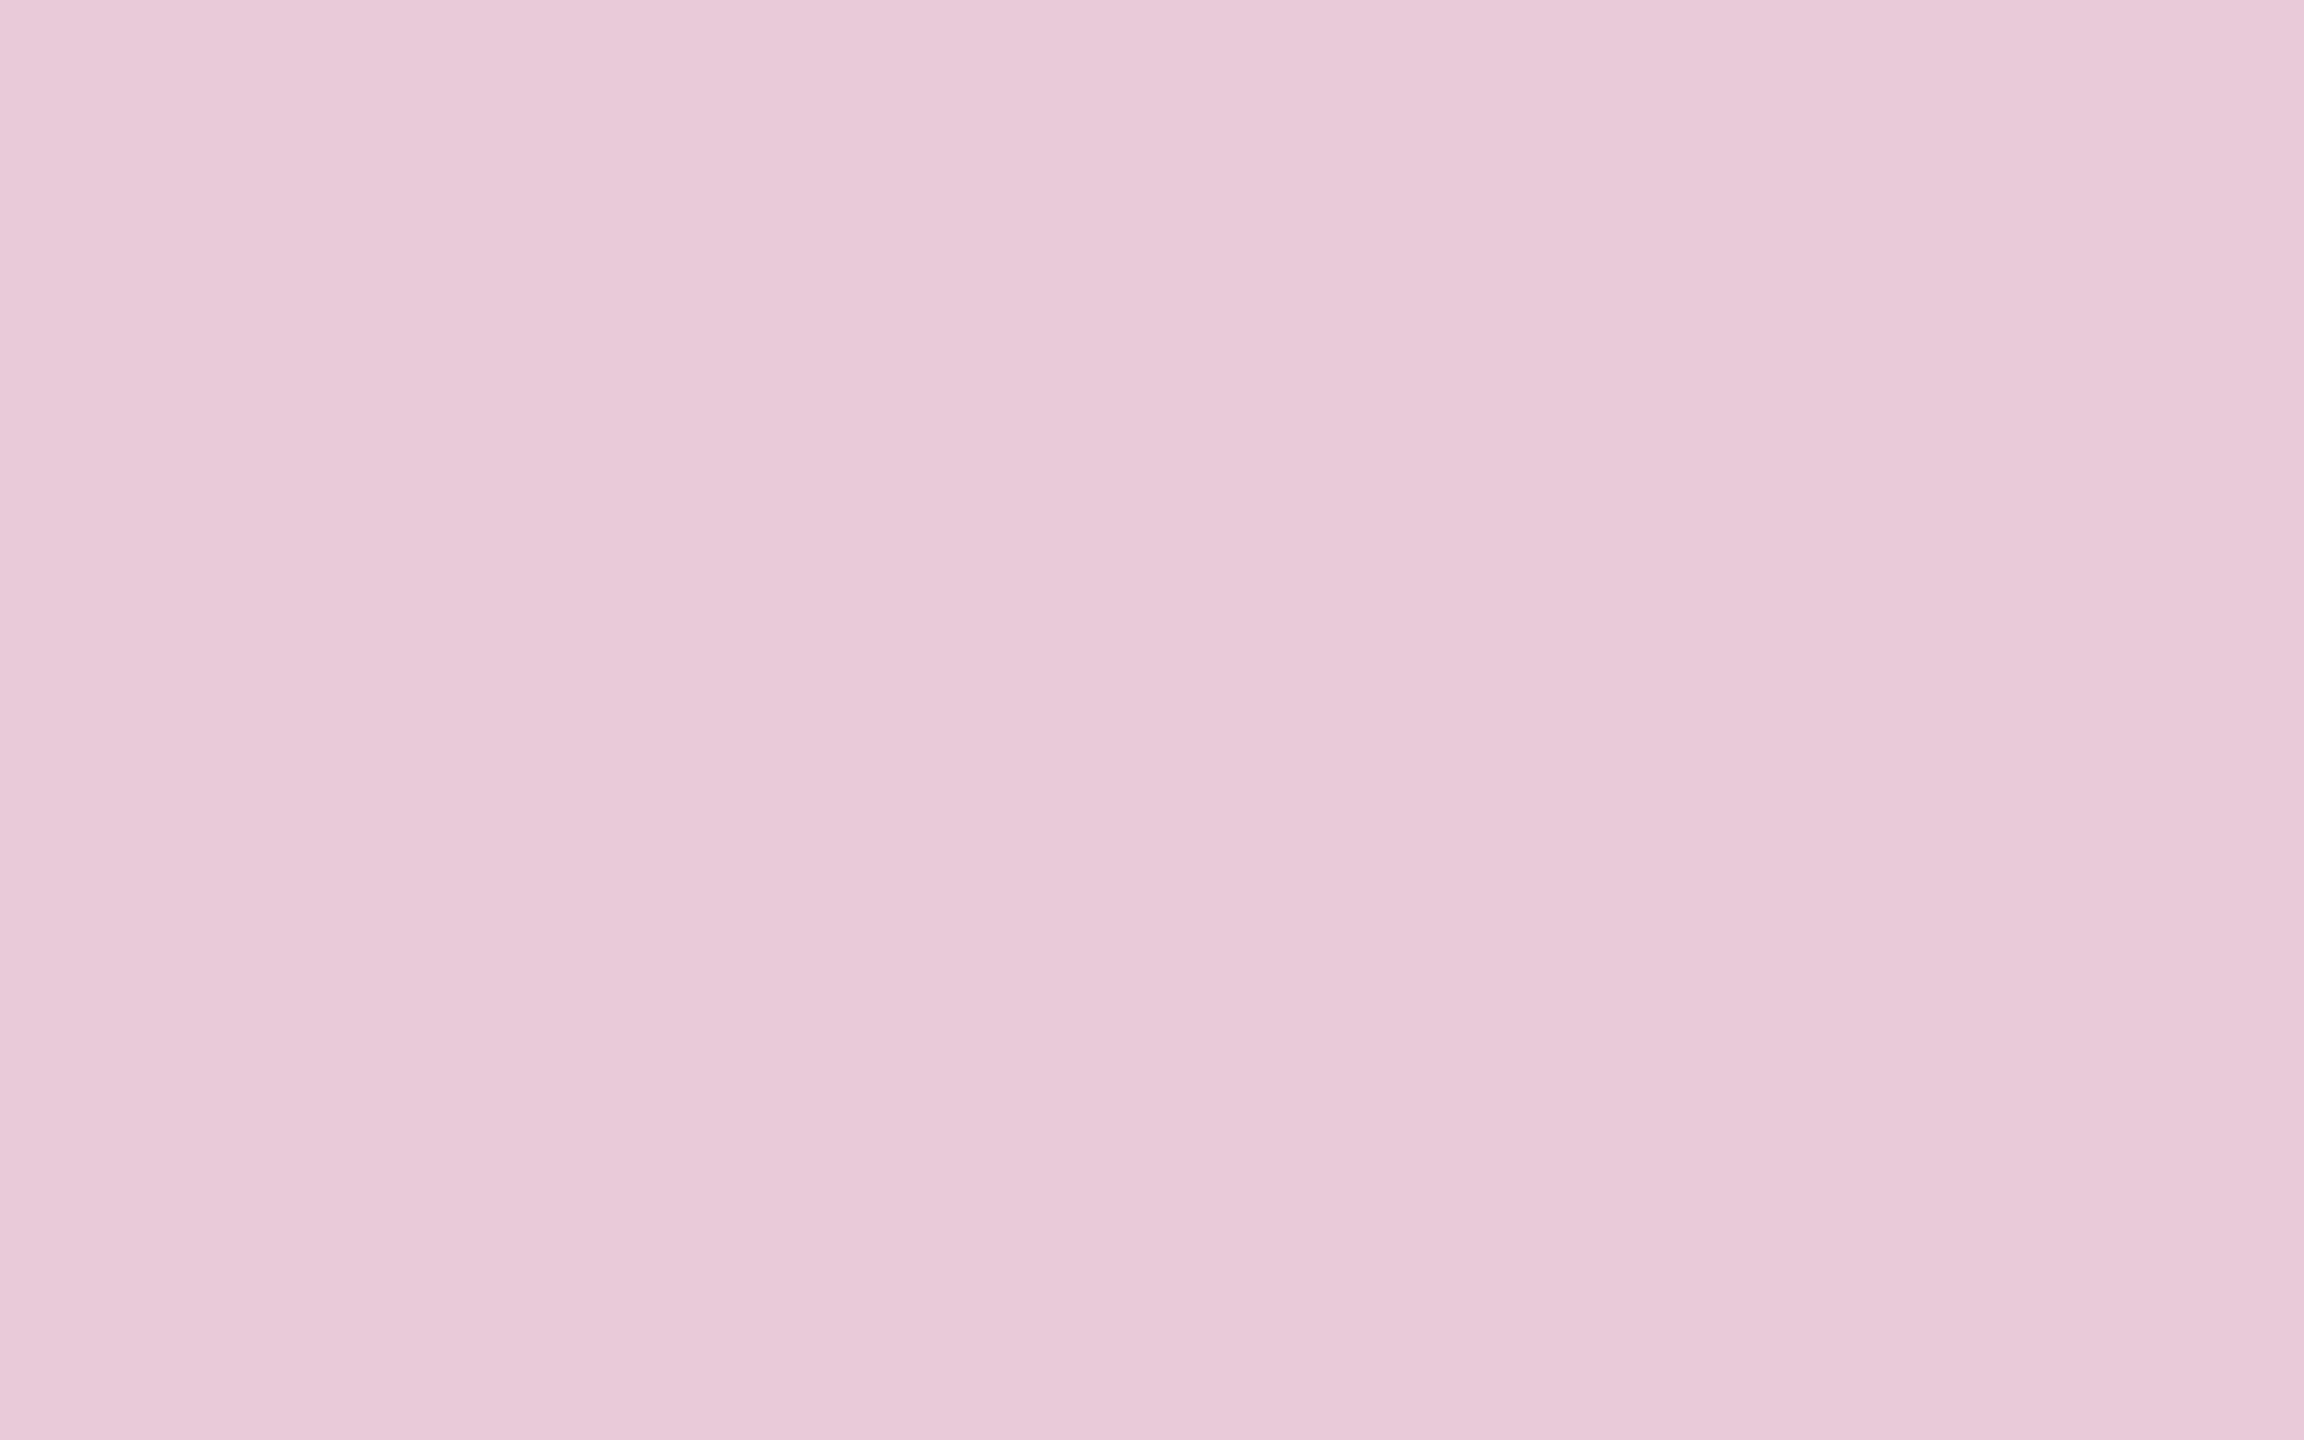 2304x1440 Queen Pink Solid Color Background